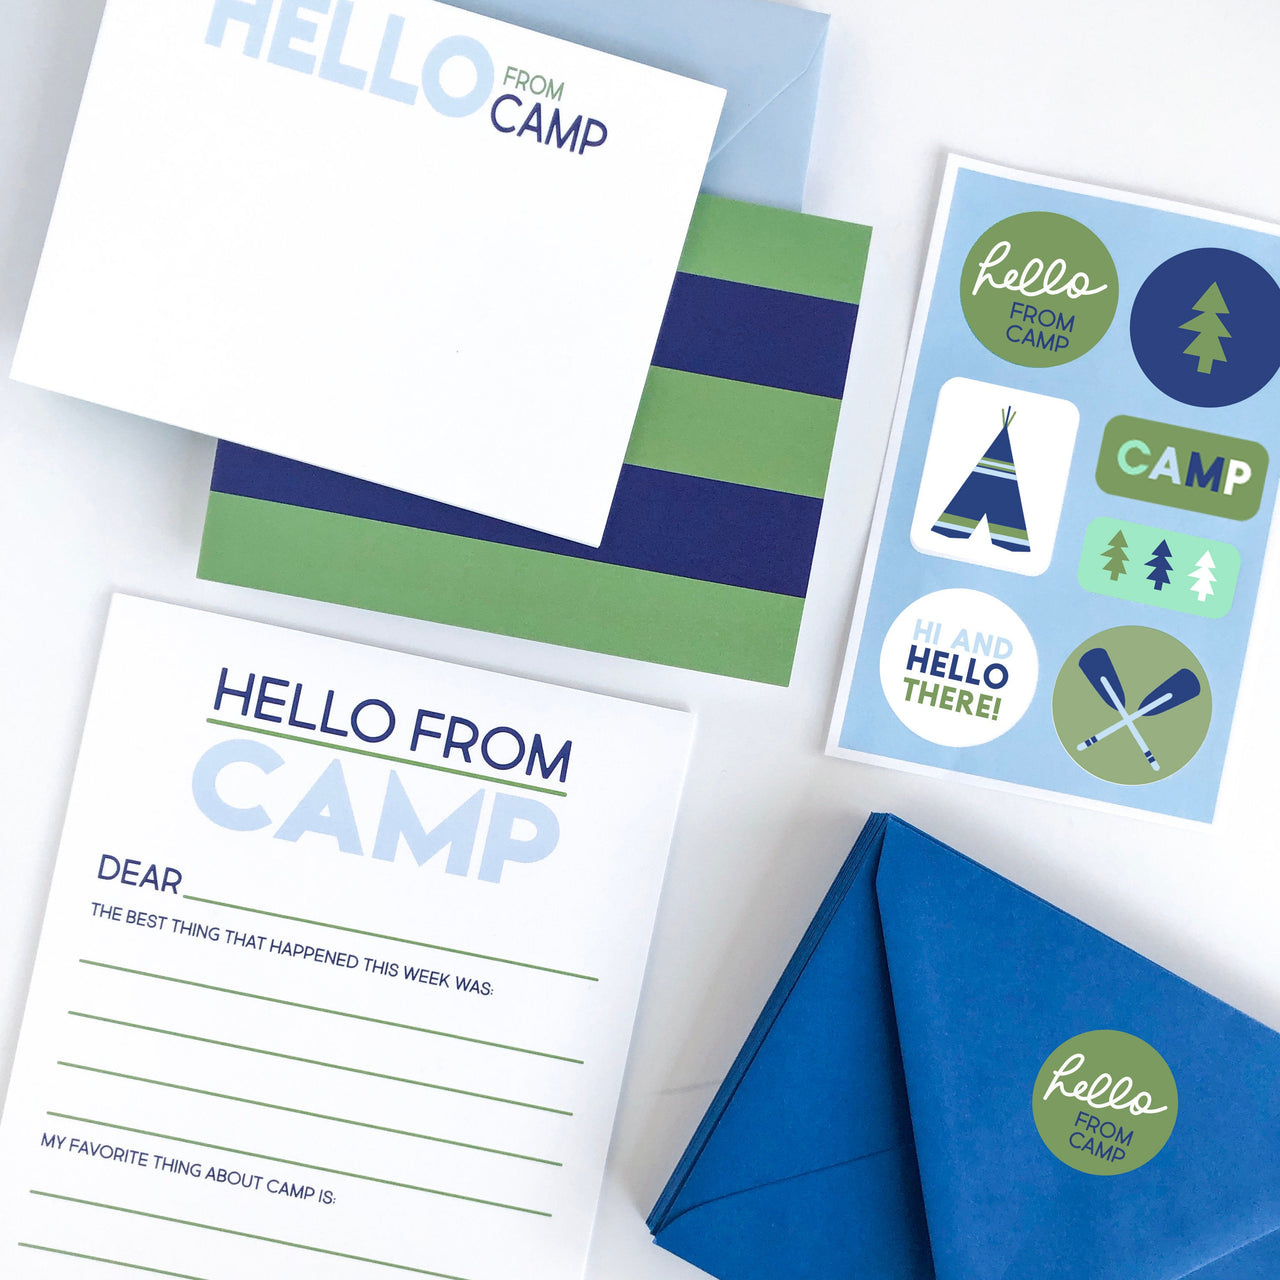 Summer Camp Stationery Set - Blue, Camp, Summer, Camp Fill In, Kids Stationery, Camp Sets, Summer camp notecards, Camp gifts - Joy Creative Shop